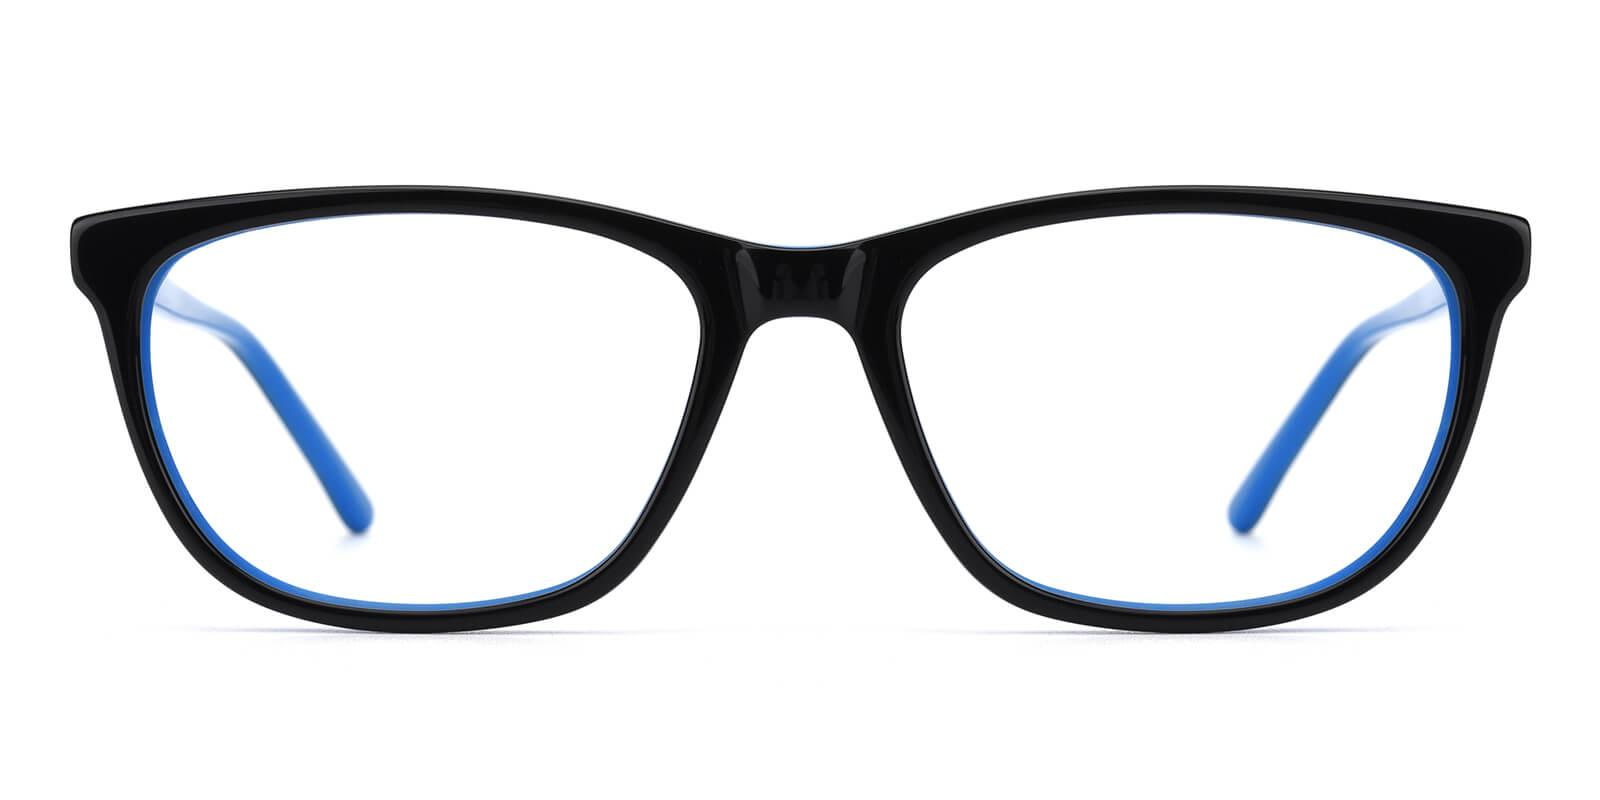 Emblem-Blue-Square / Cat-Acetate-Eyeglasses-additional2